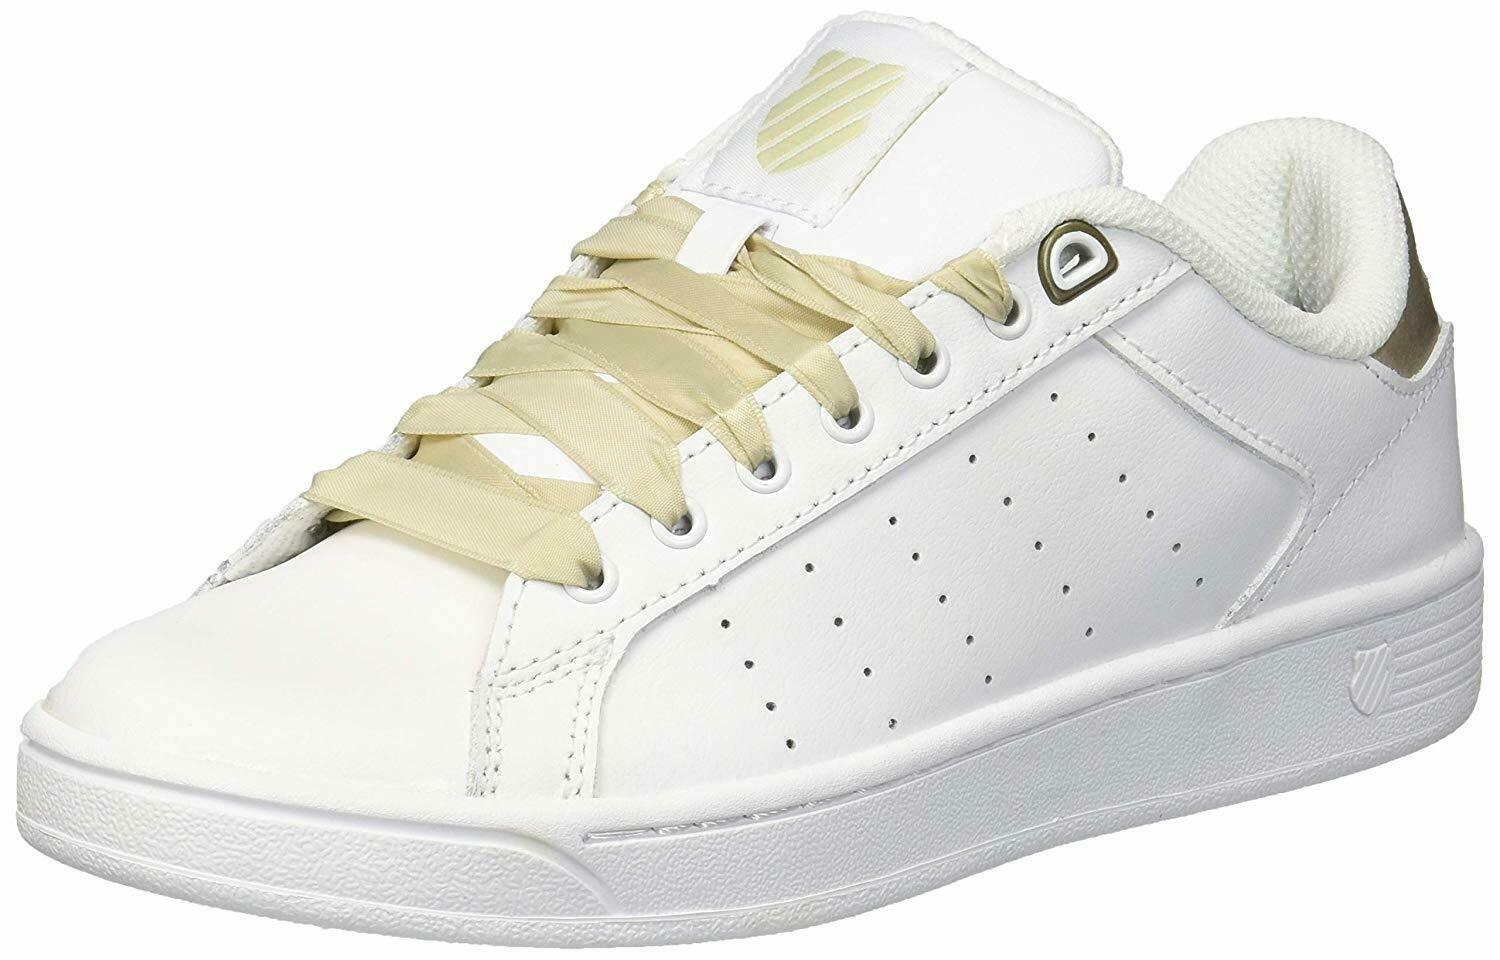 K-Swiss Womens Clean Court CMF Sneaker Oyster White- Pick SZ color.